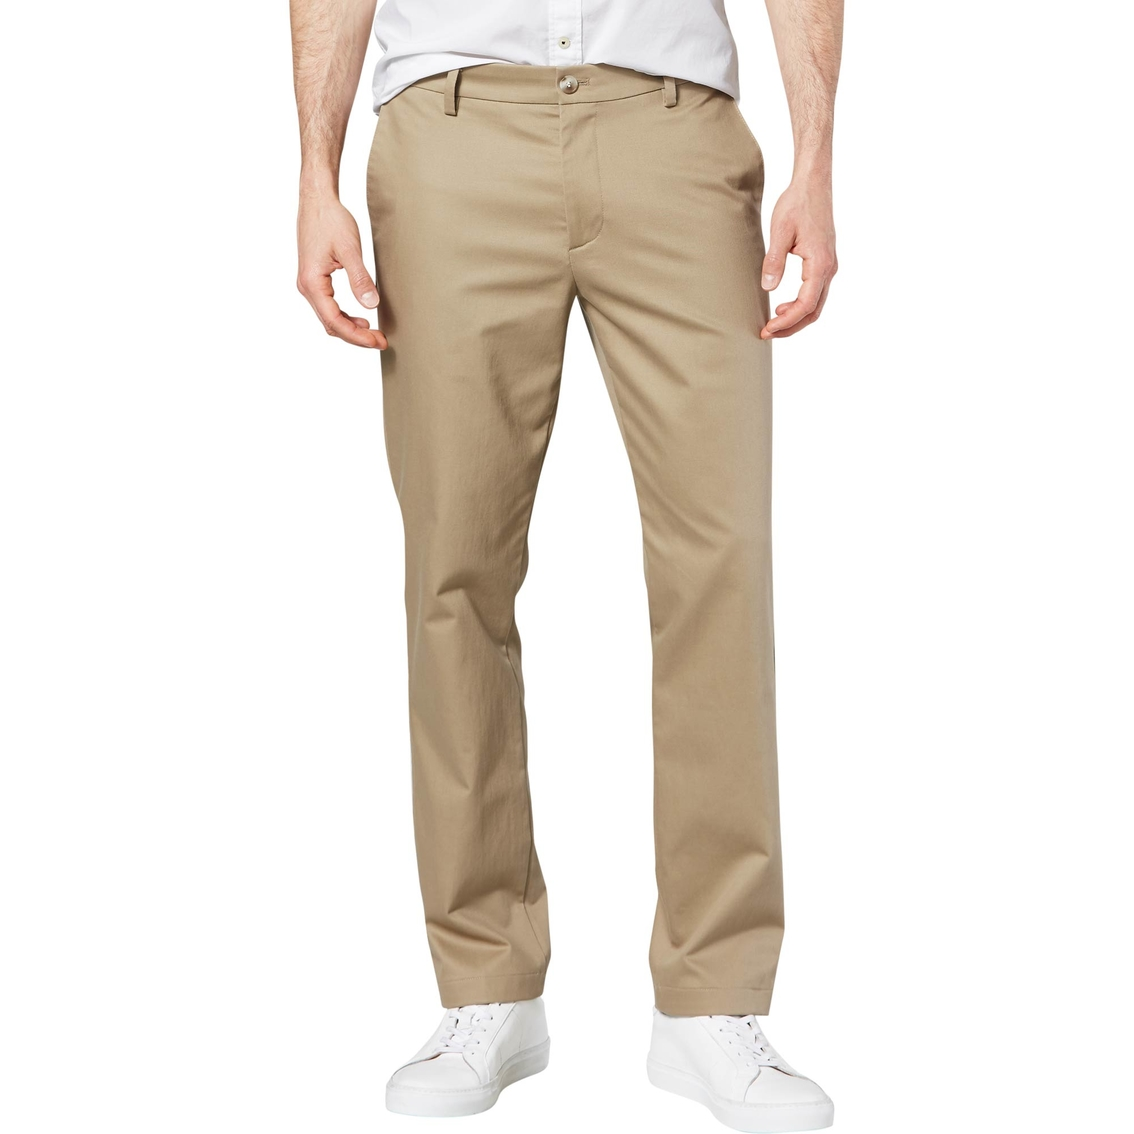 3e0f81cf680404 Dockers Slim Fit Signature Khaki Lux Cotton Stretch Pants | Pants ...